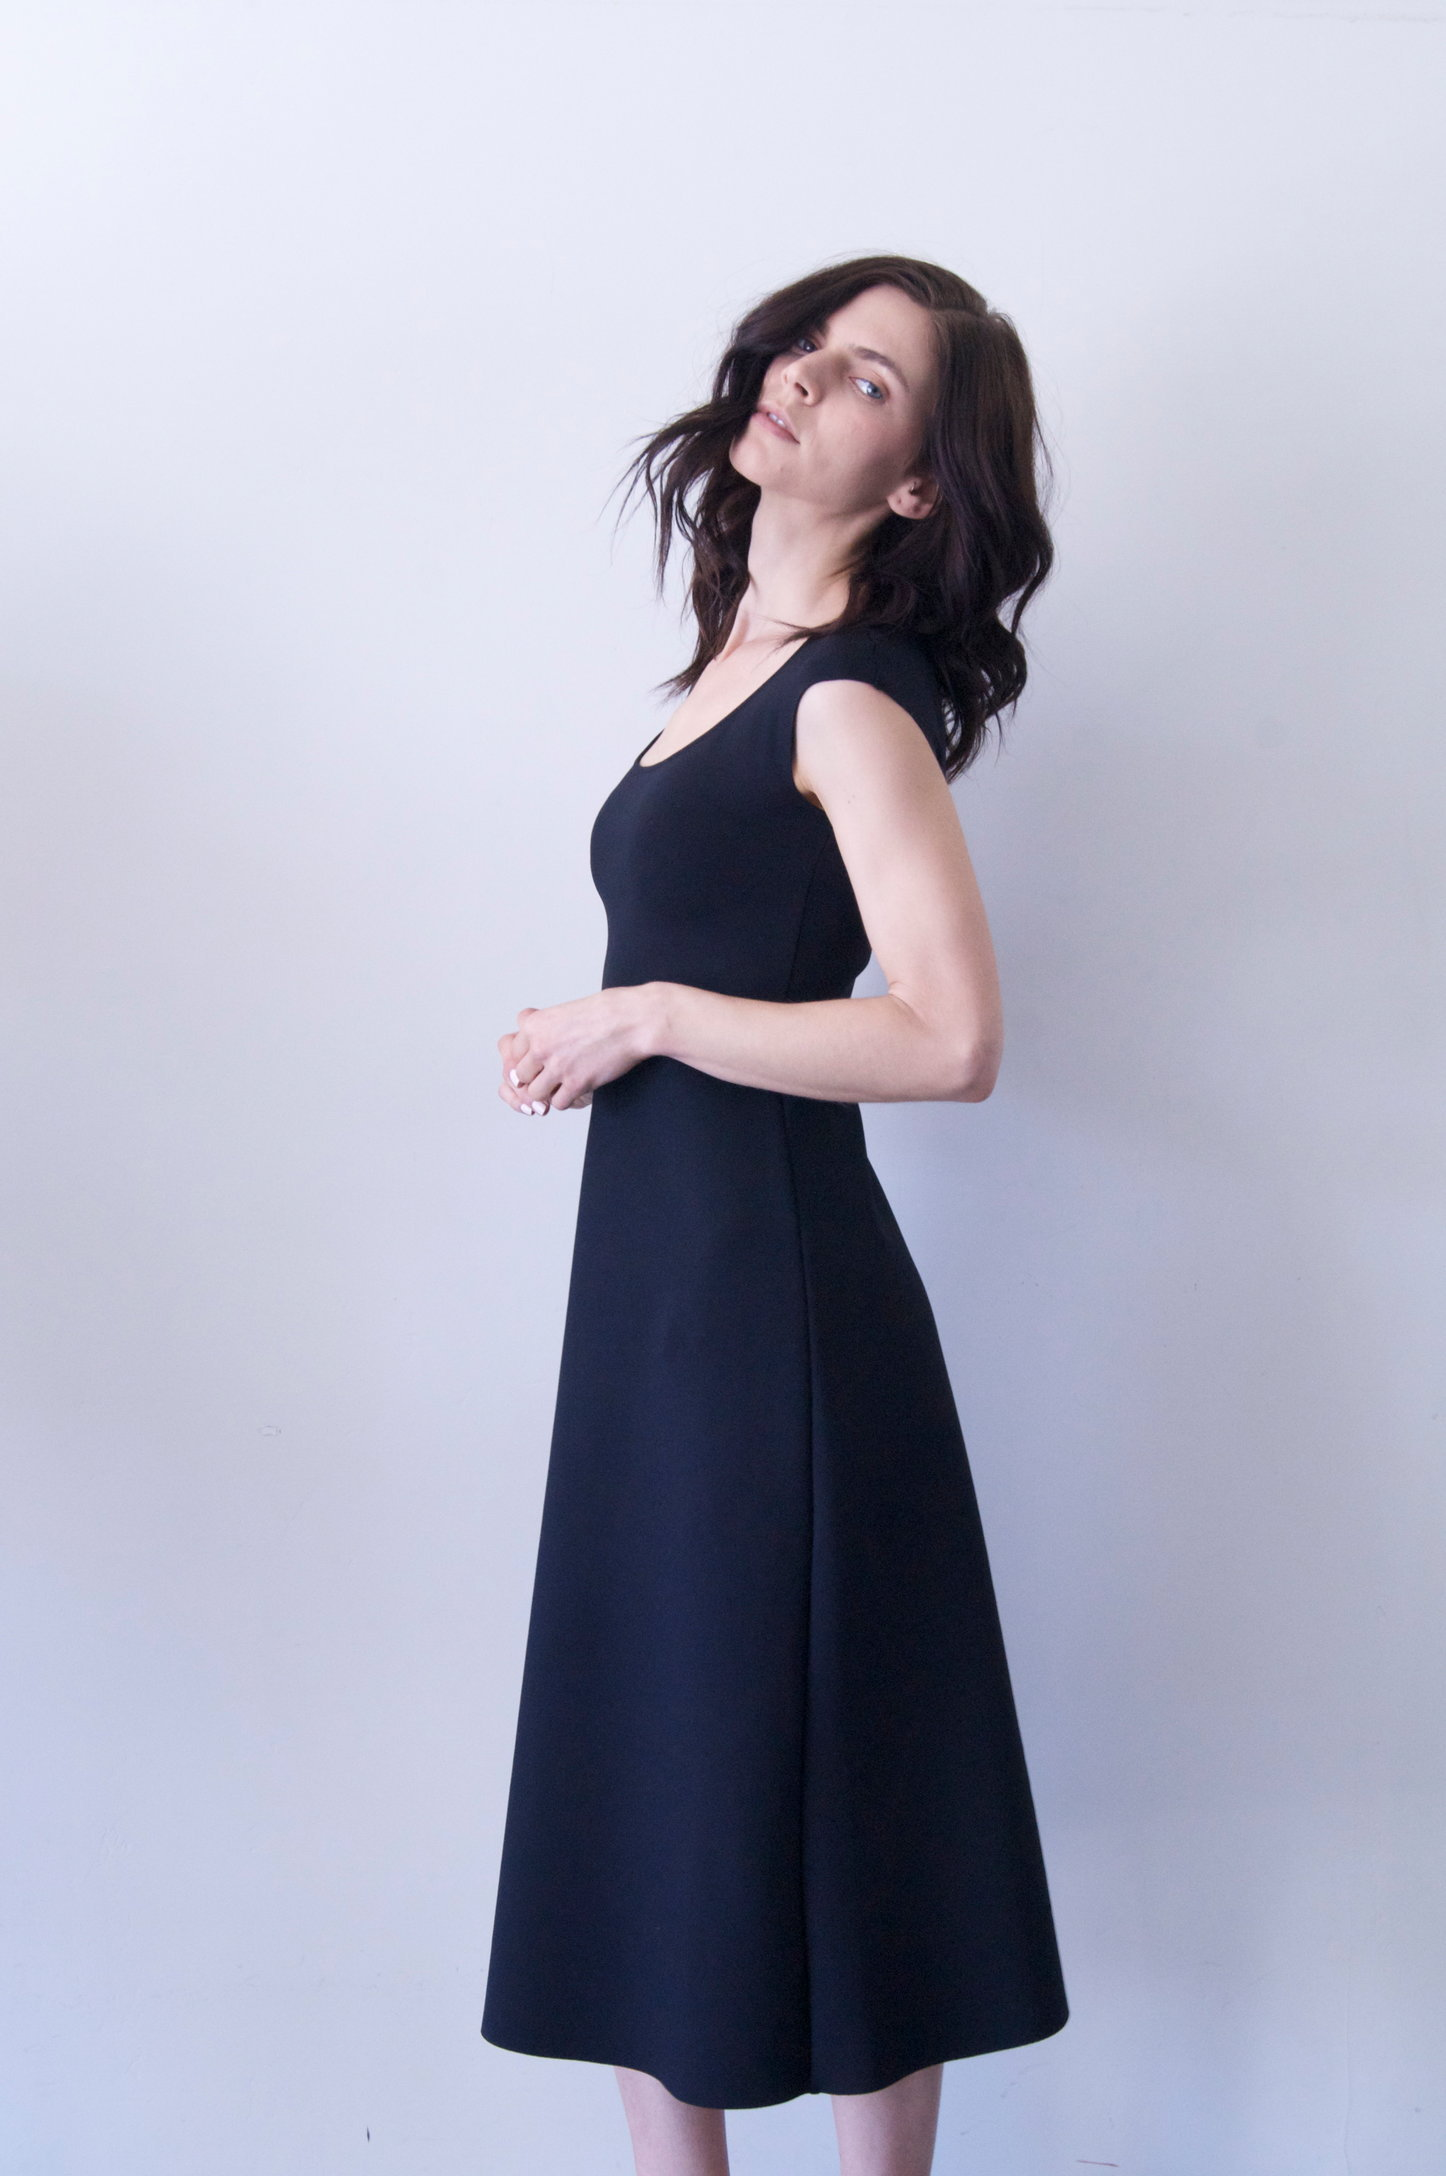 rhode dress in black neoprene   590.00